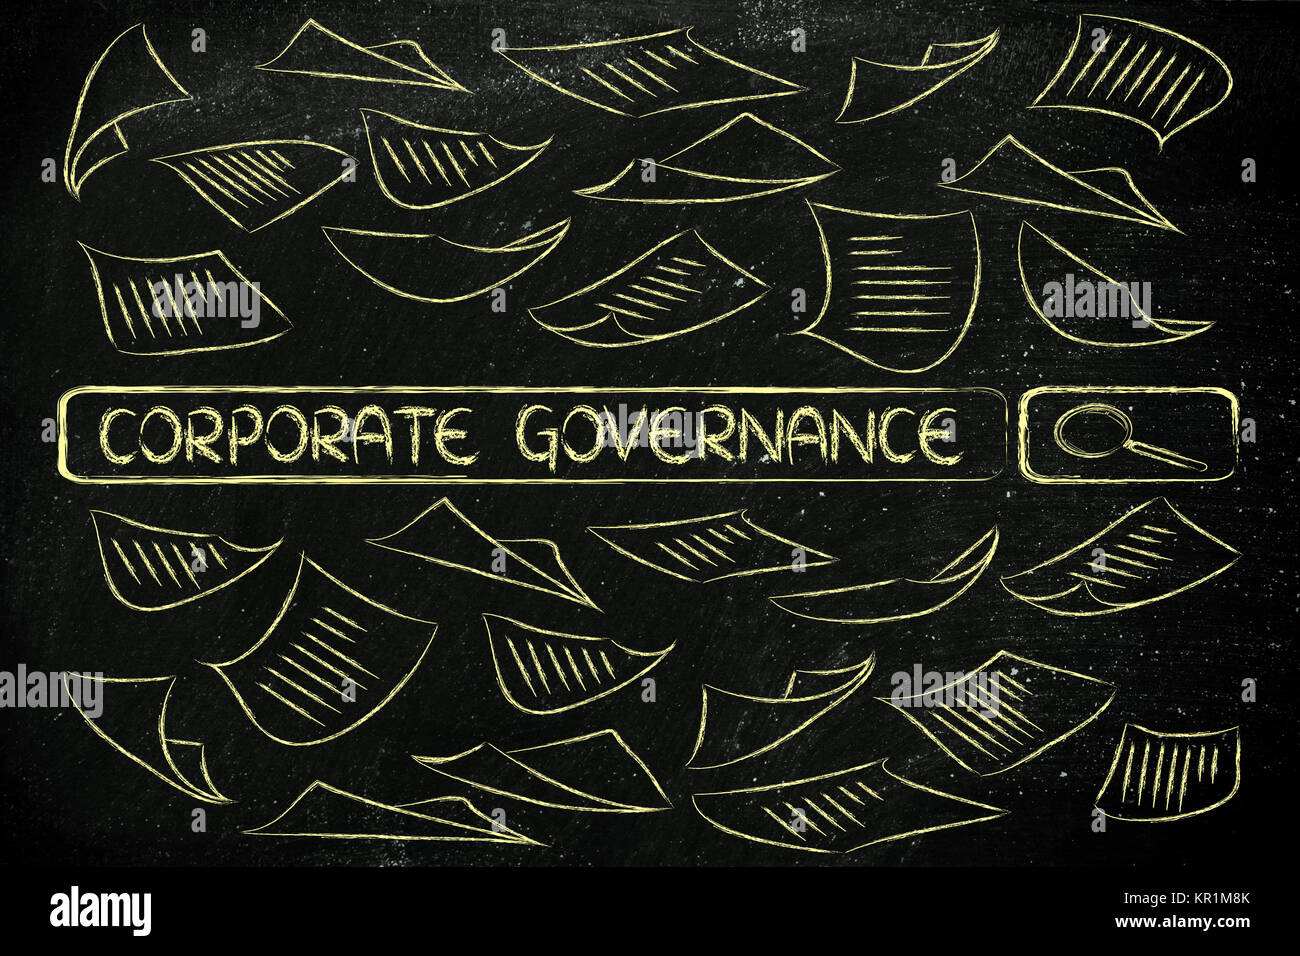 researching about corporate governance, messy business documents flying around a search engine bar - Stock Image